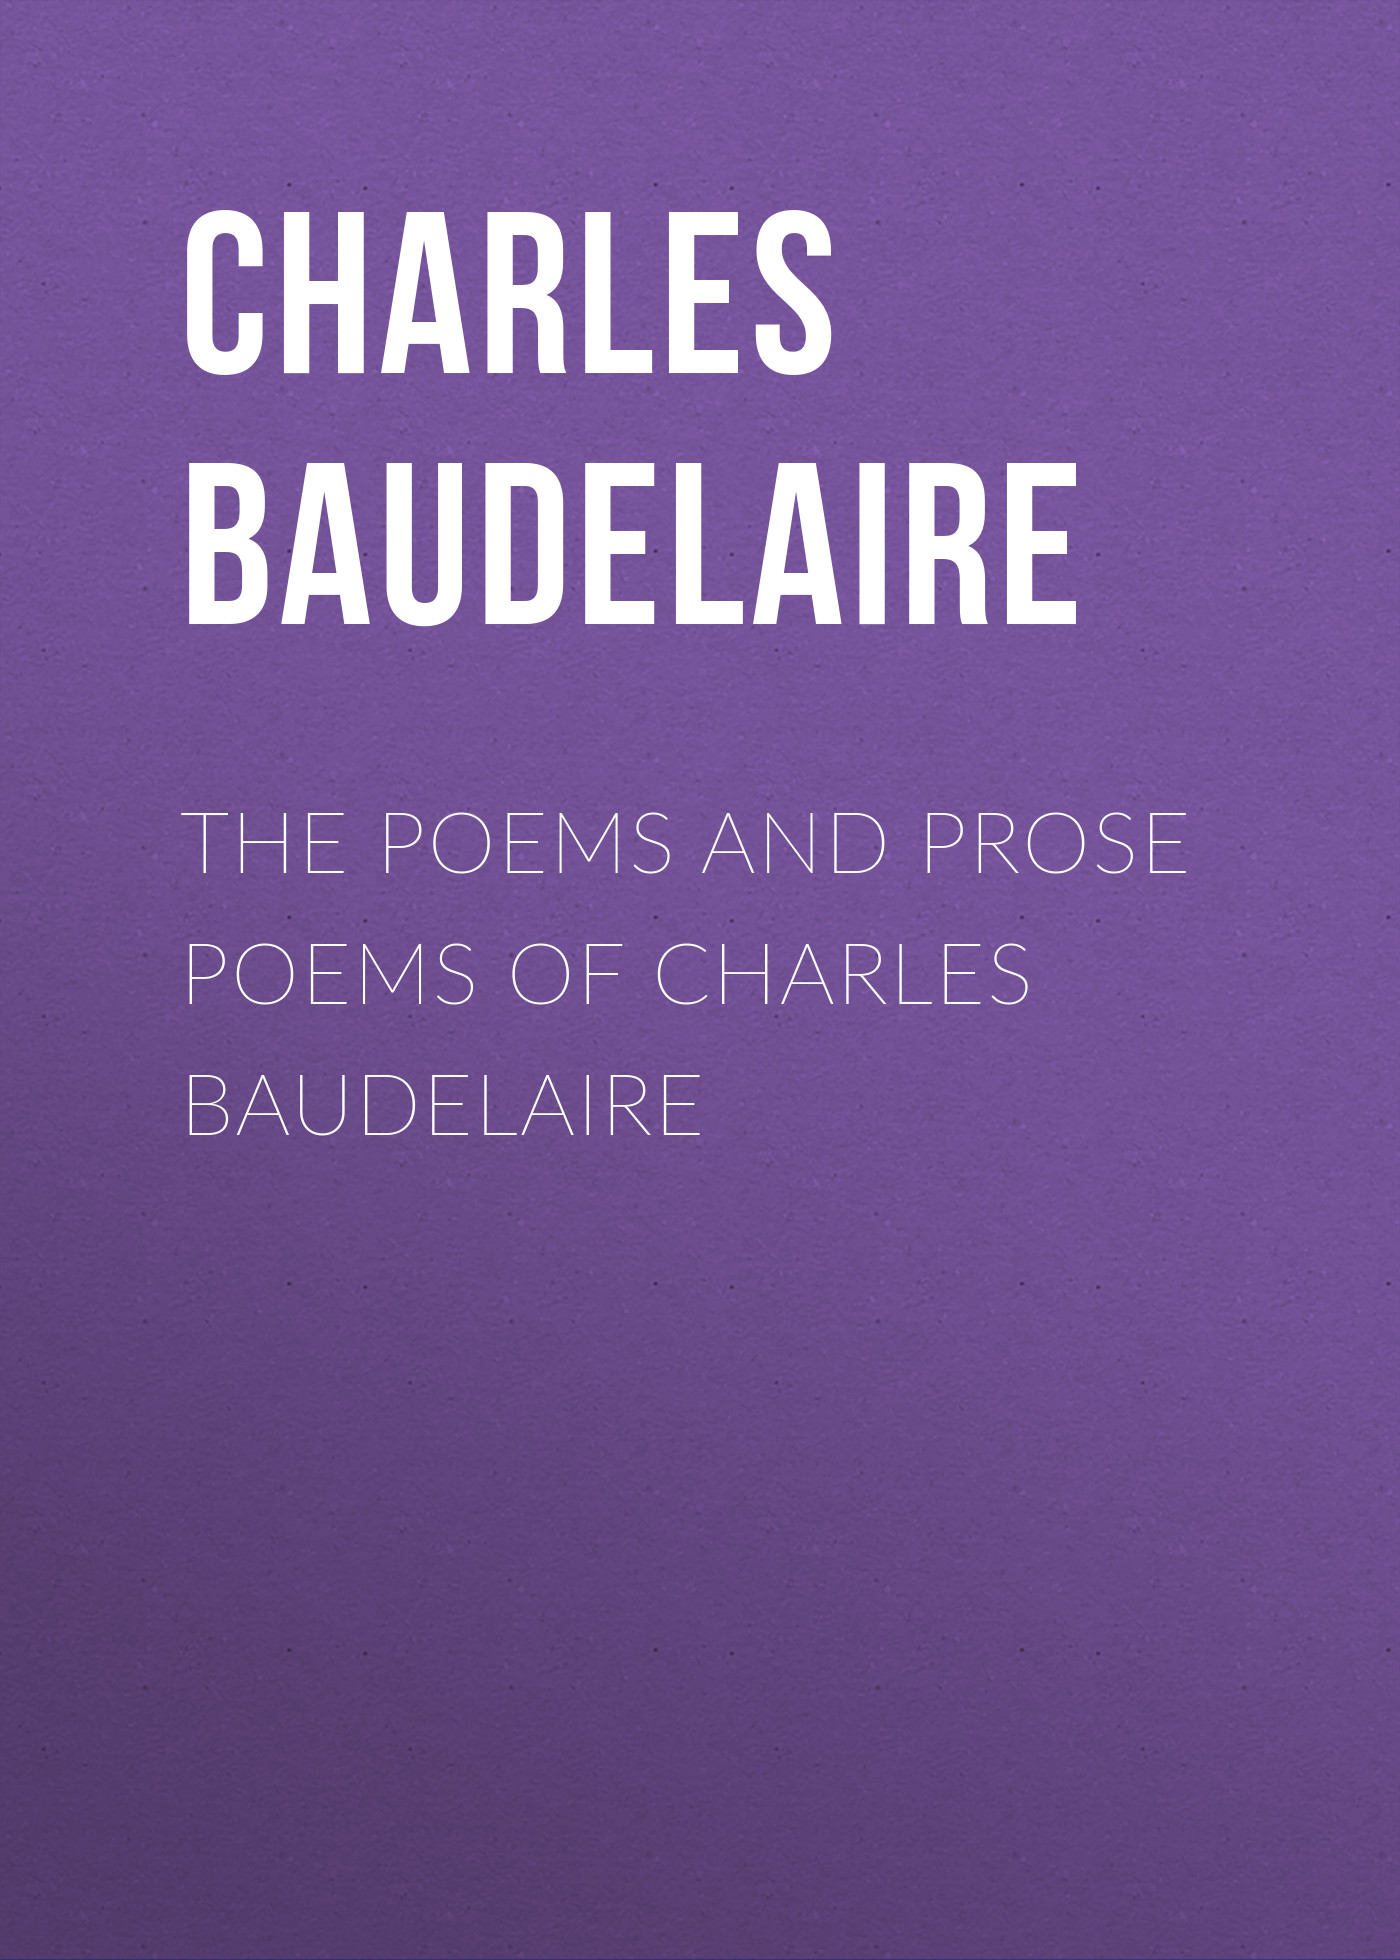 Baudelaire Charles The Poems and Prose Poems of Charles Baudelaire charles pierre baudelaire